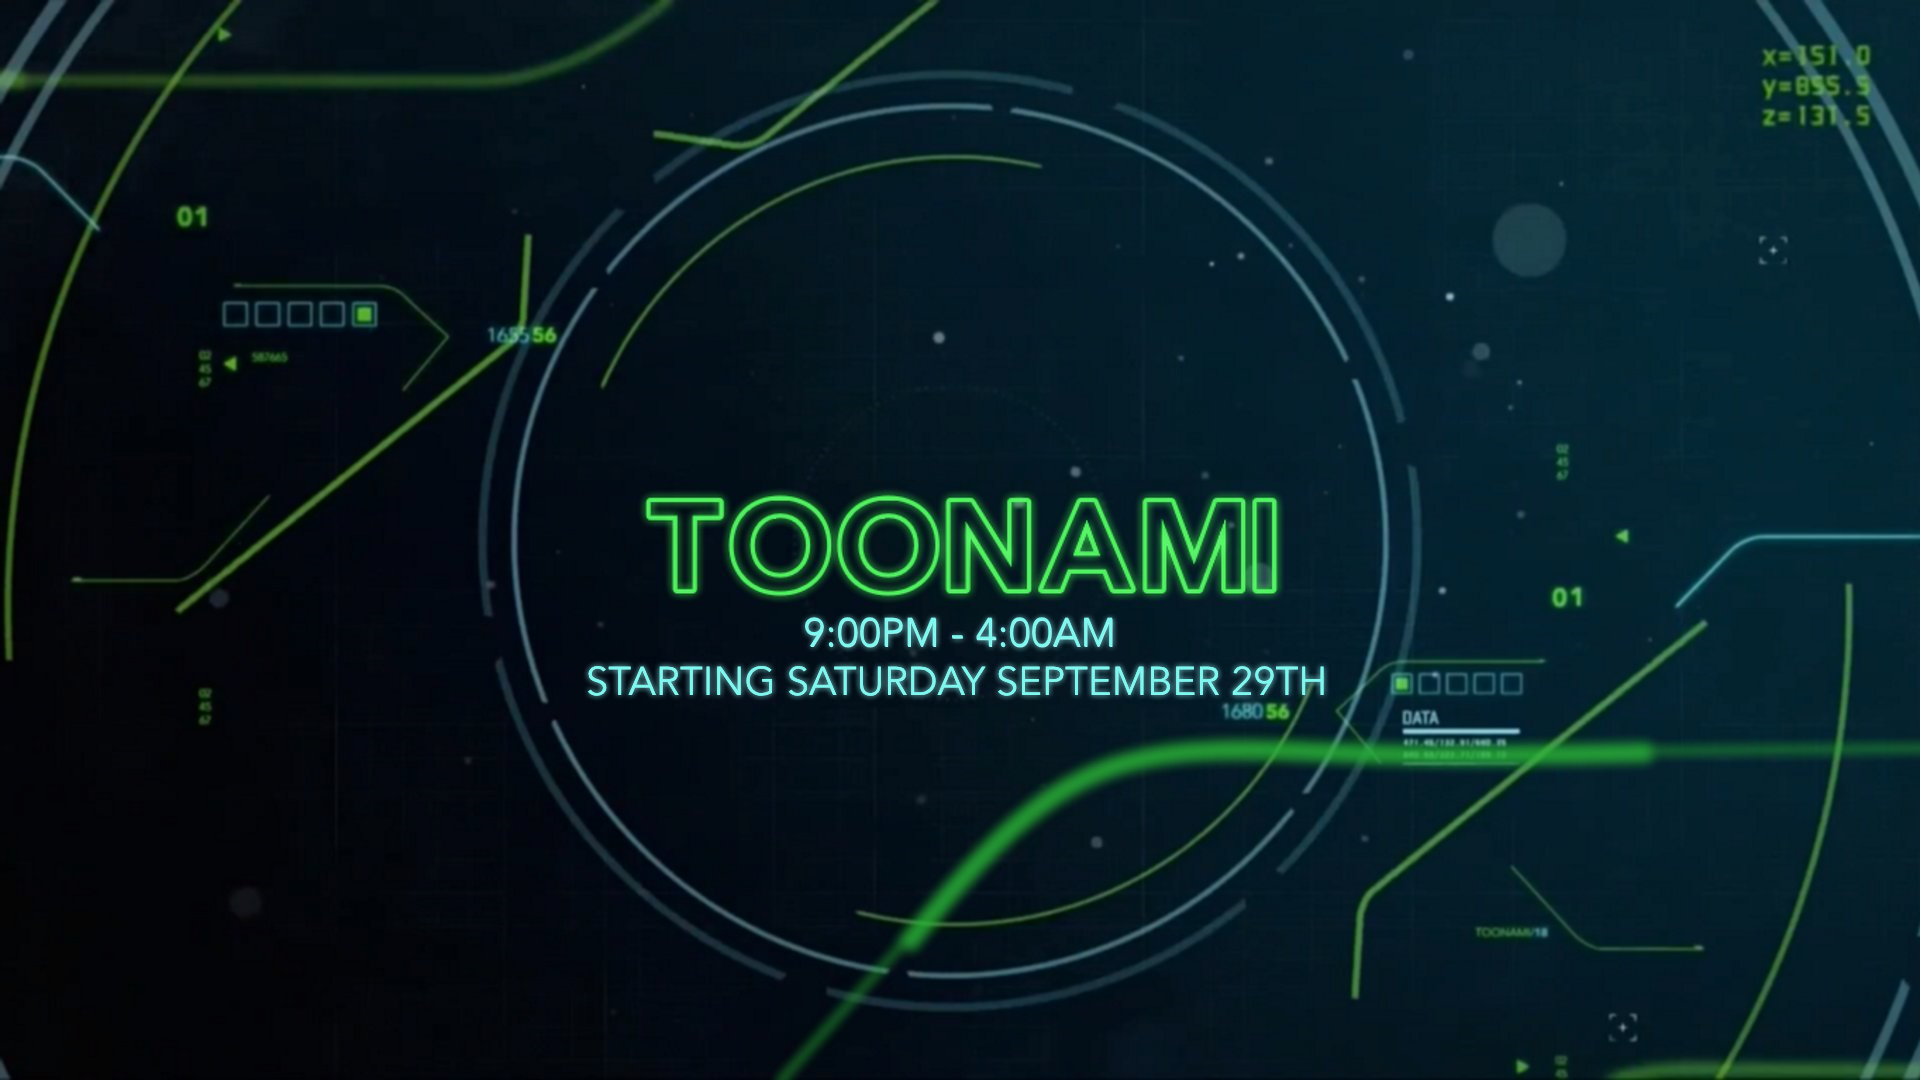 Toonami Expands to Primetime; Samurai Jack Season 1 to Broadcast in HD for First Time